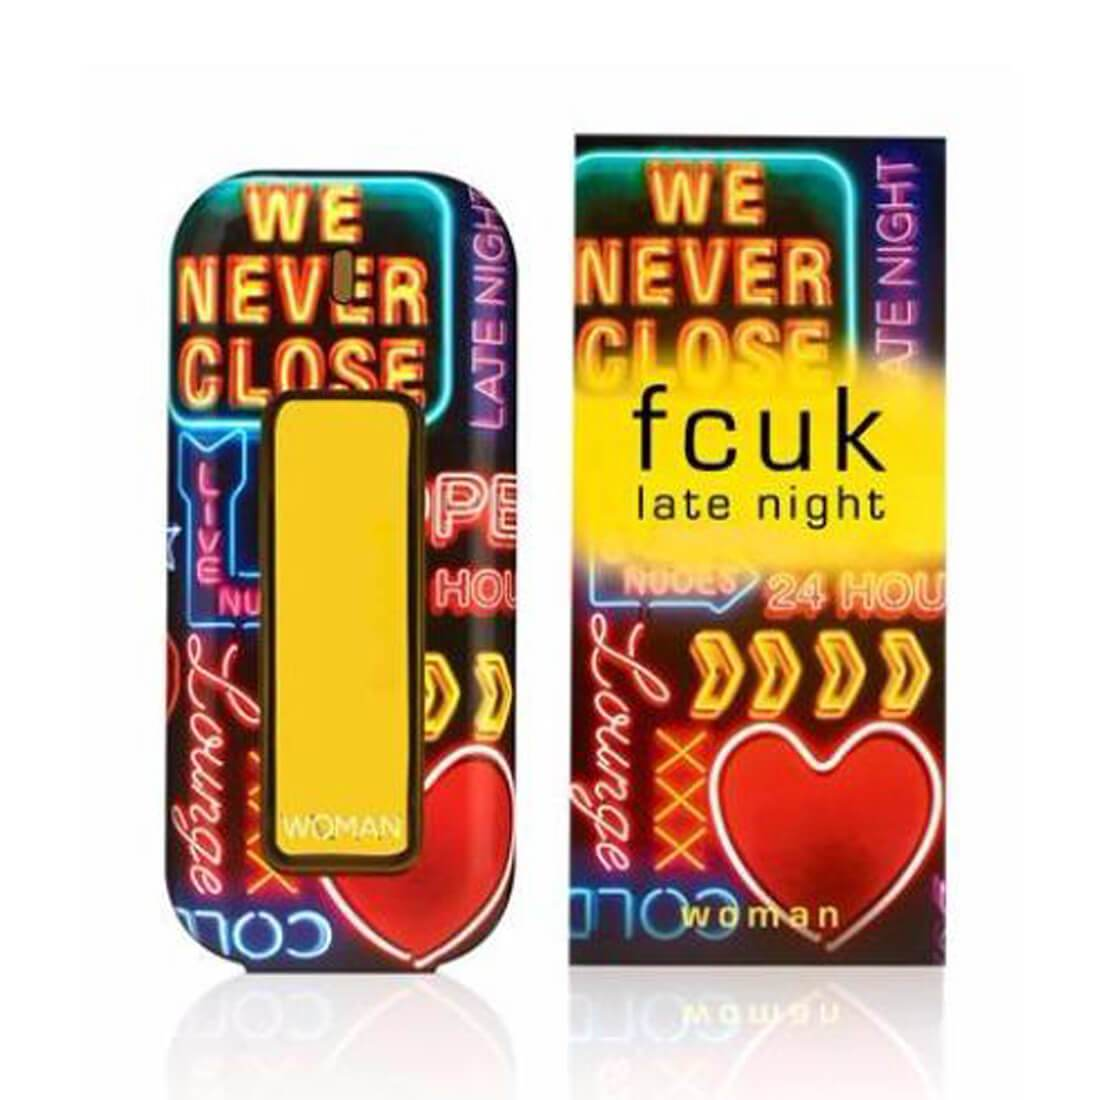 Fcuk Late Night EDT Perfume For Women - 100ml